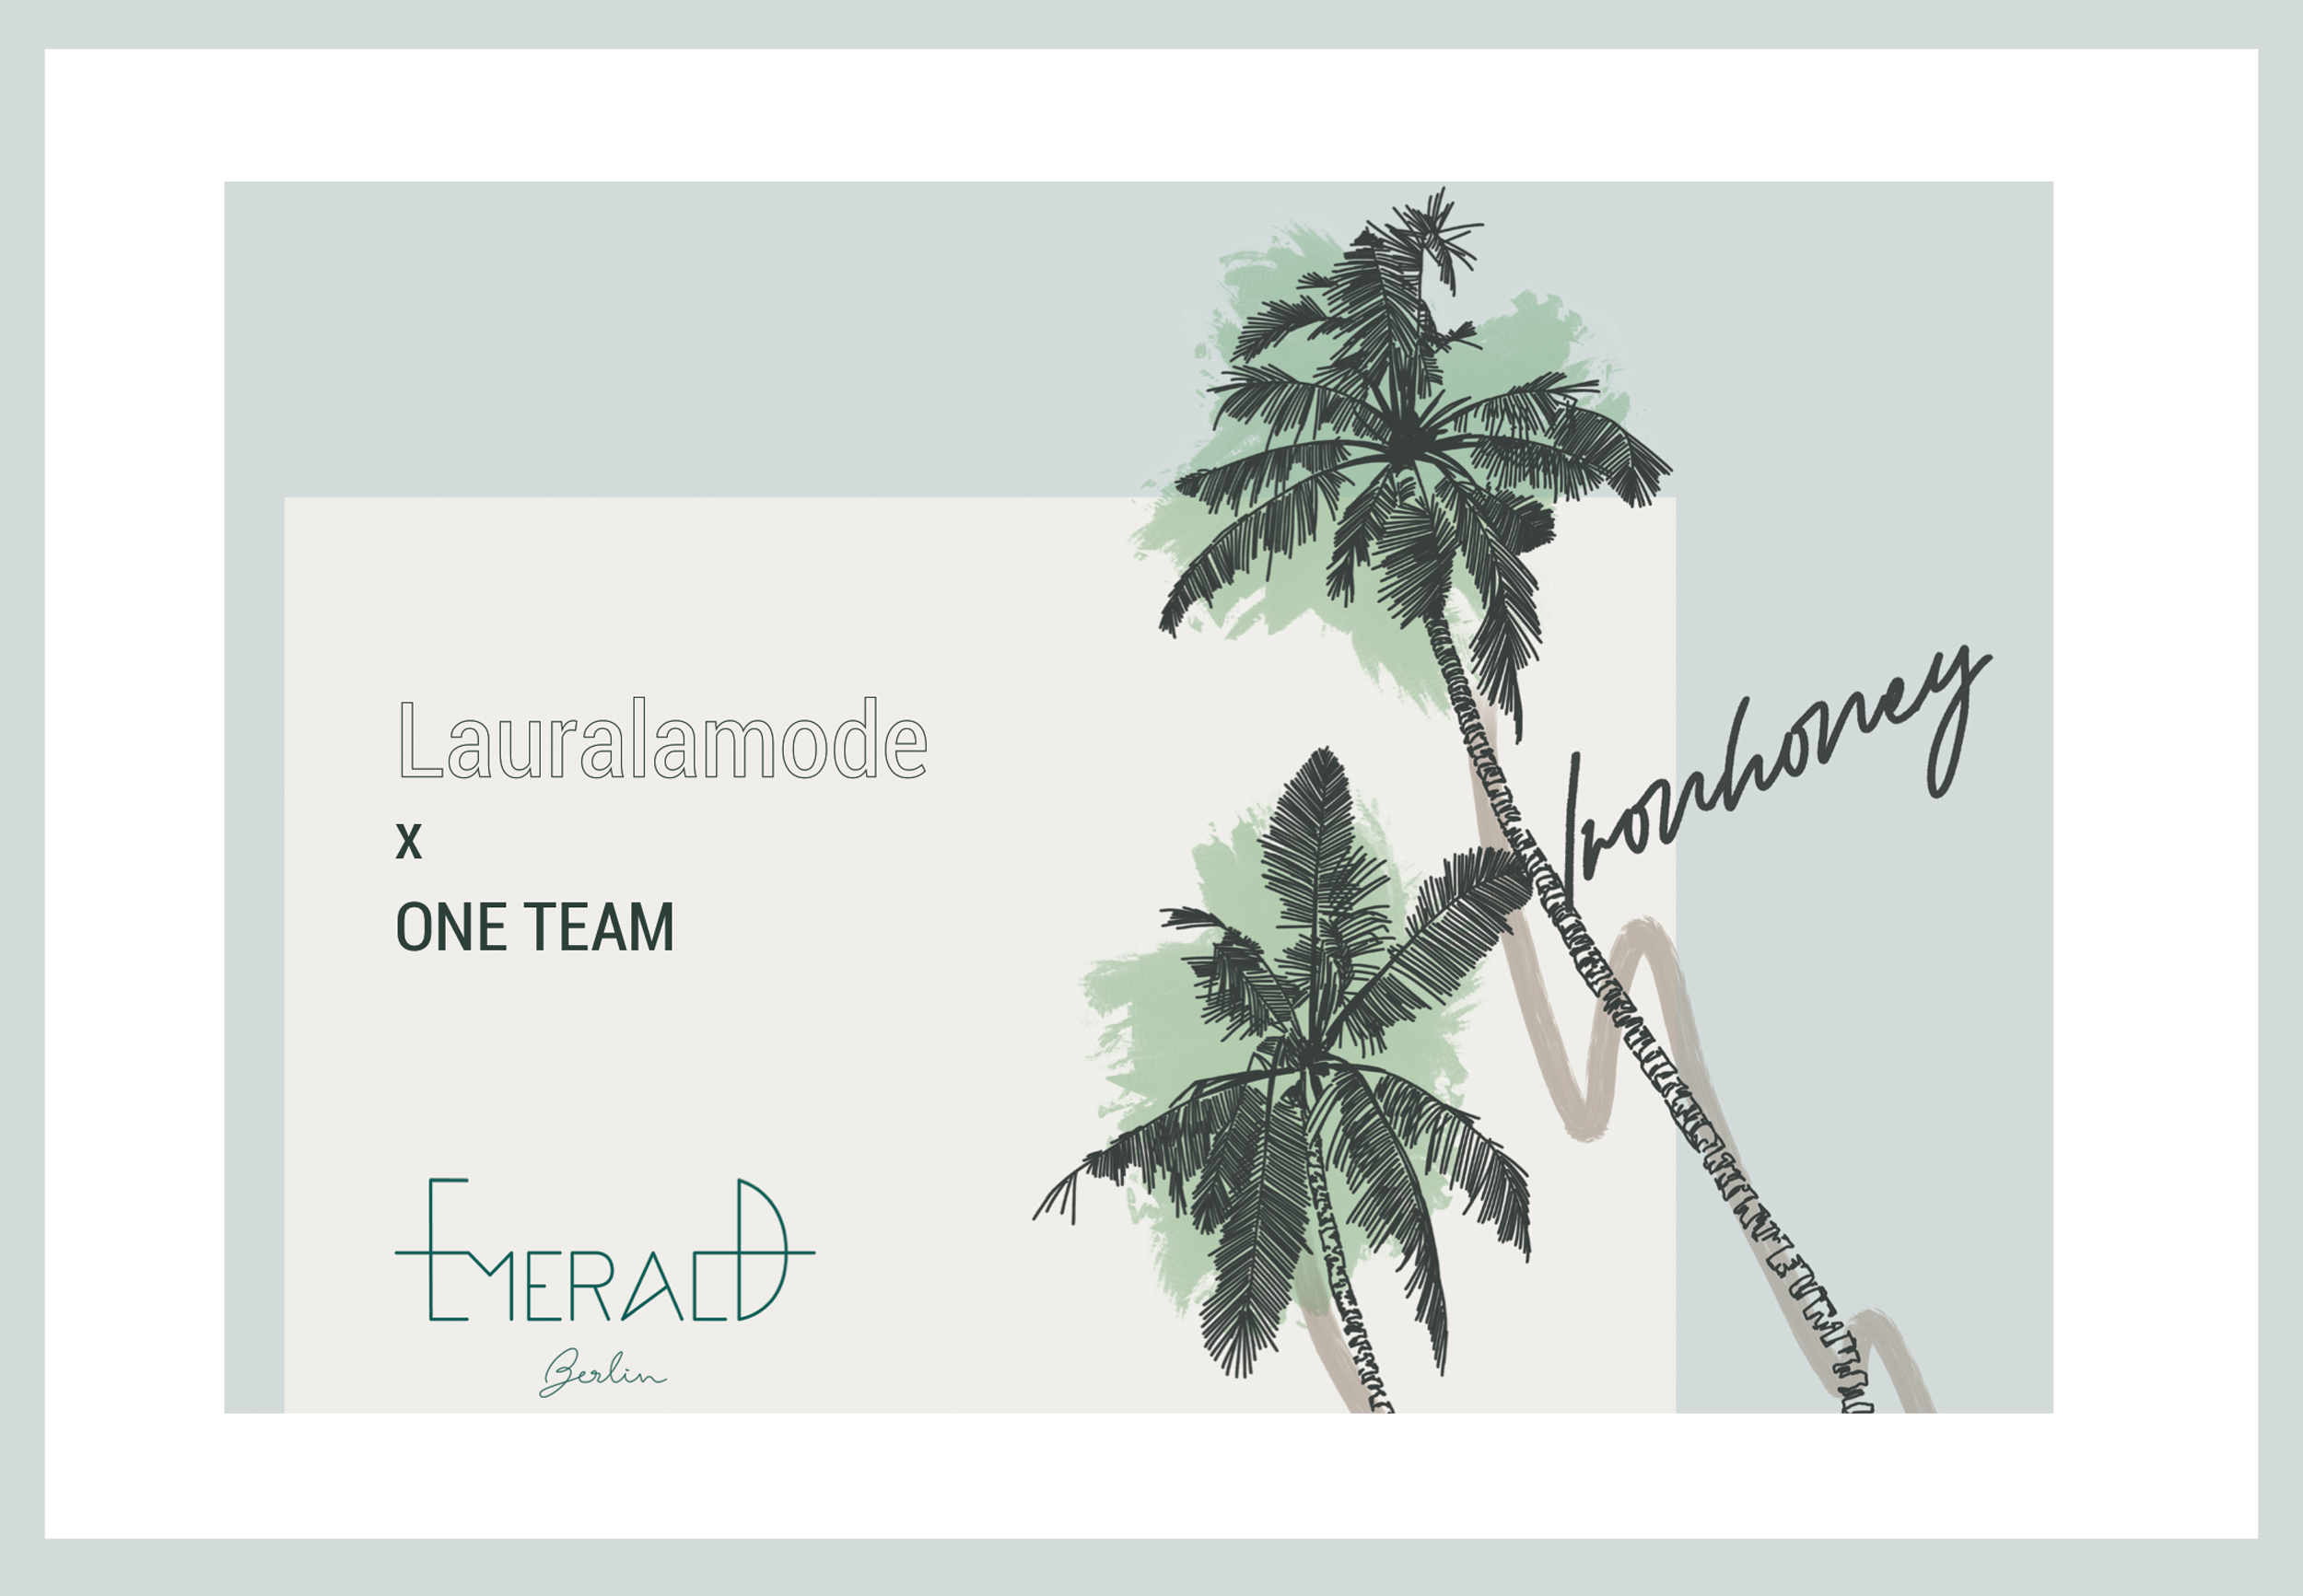 lauralamode-emerald berlin-blogger-kollektion-charity-one team-social-berlin-charity kollektion-berlin-munich-blogger-sustainable-nachhaltig-nachhaltige mode